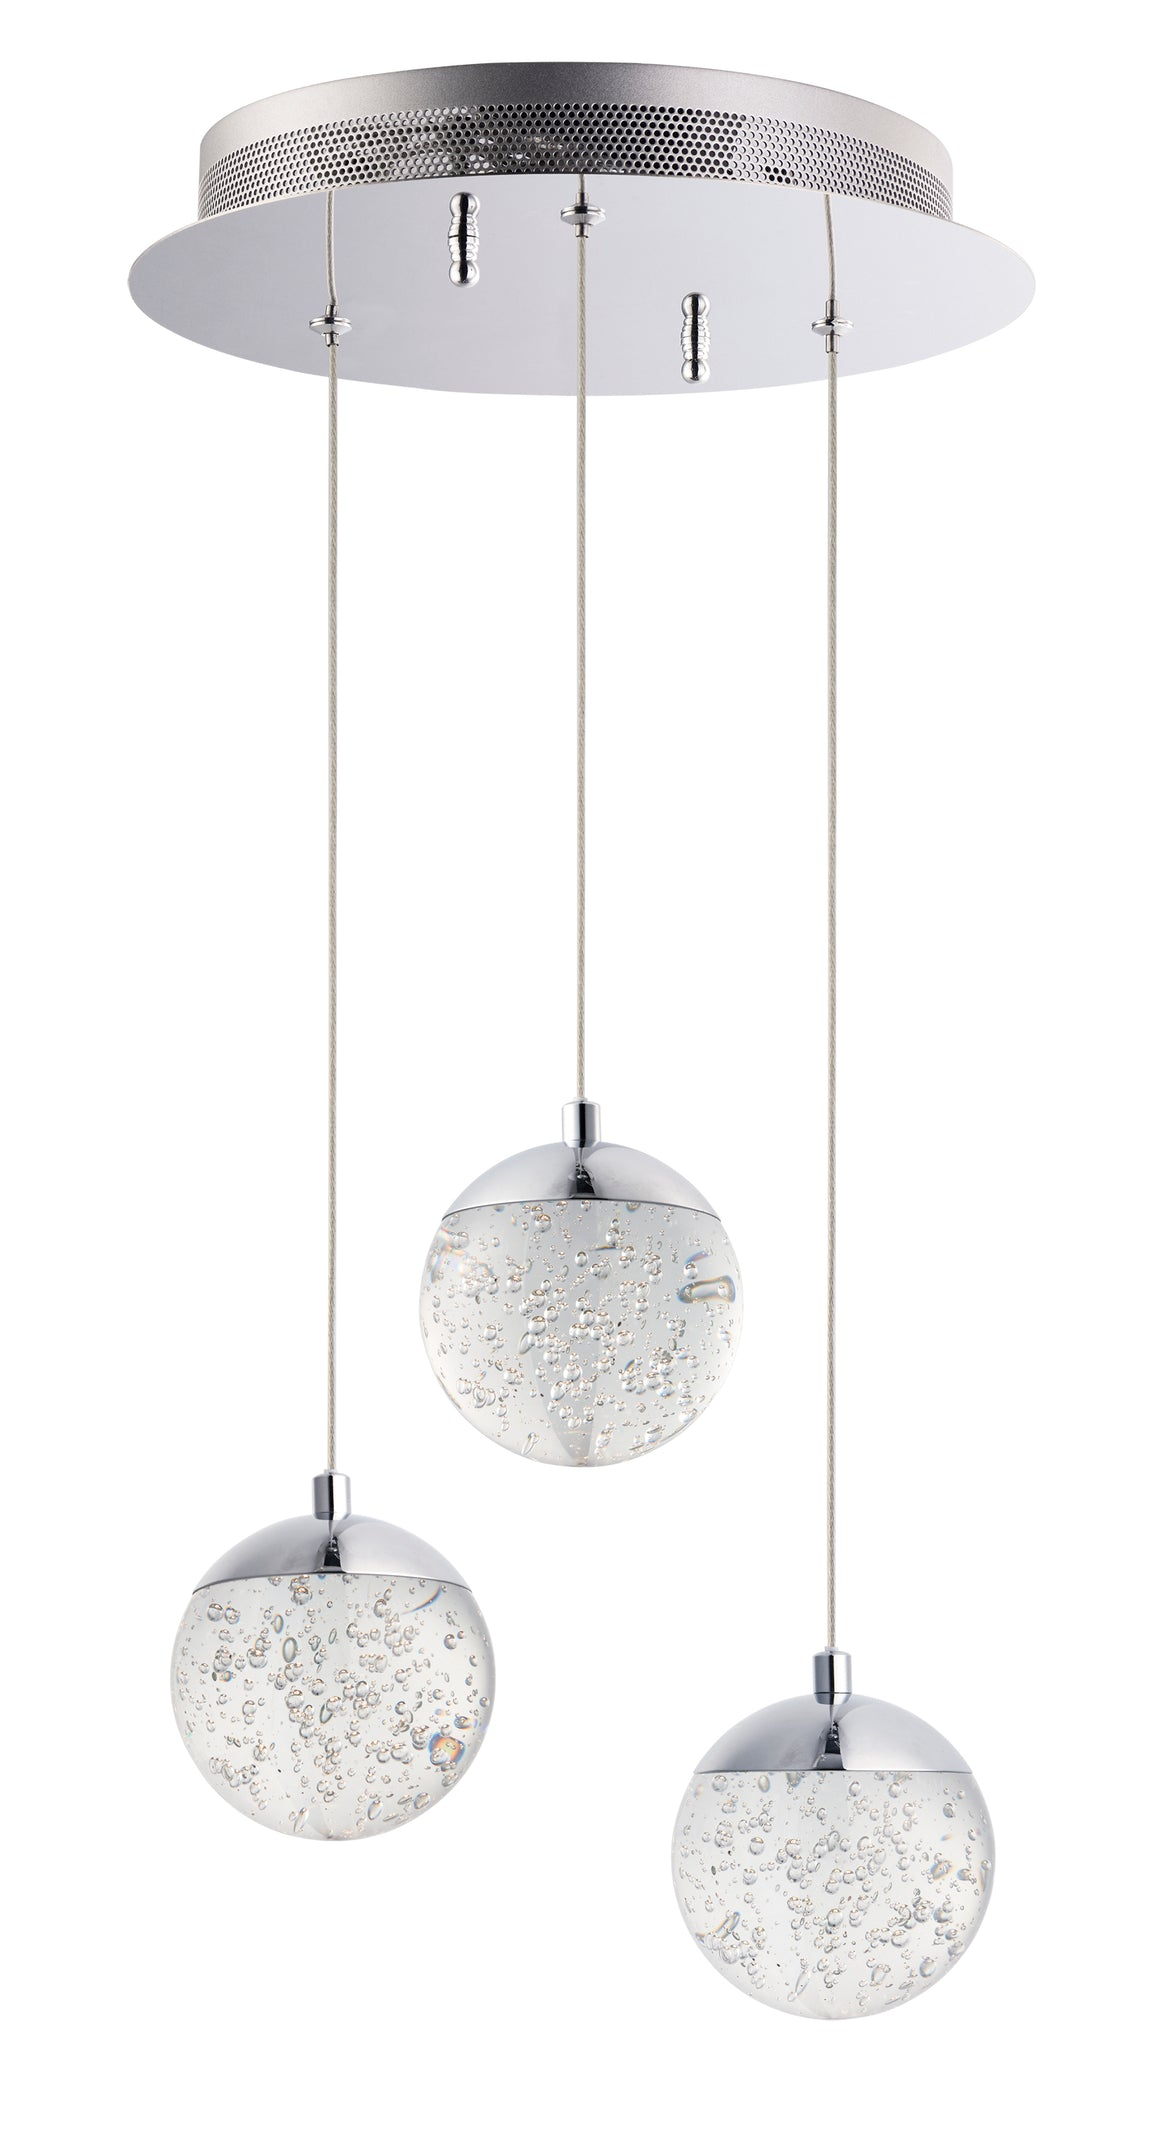 Orb II 3-Light LED Pendant